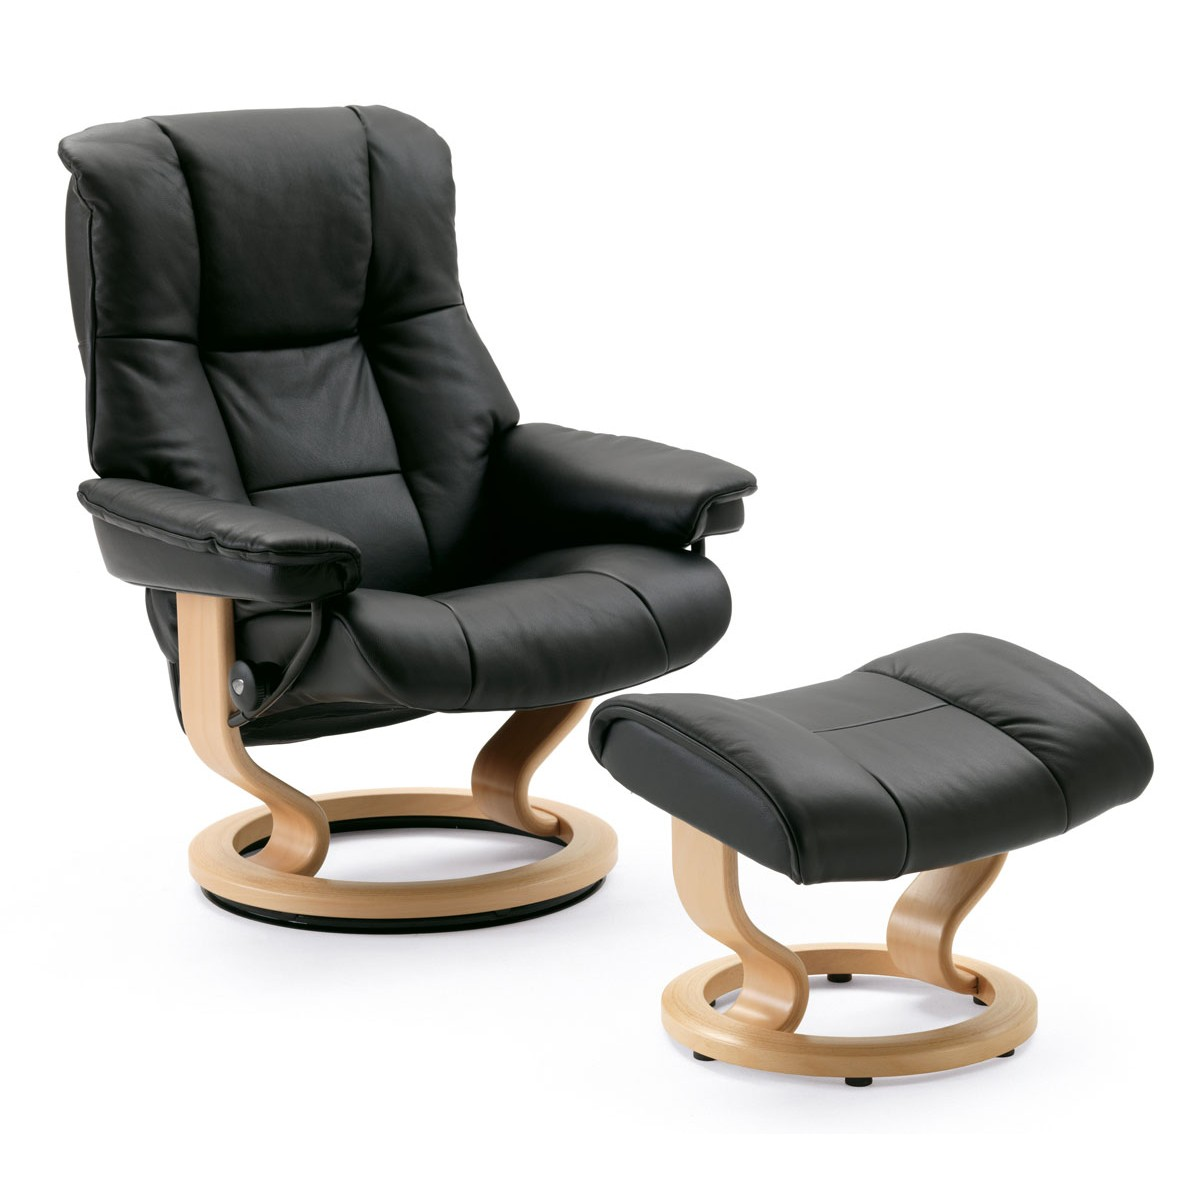 Small Chair With Ottoman Stressless Mayfair Small Recliner And Ottoman From 2 495 00